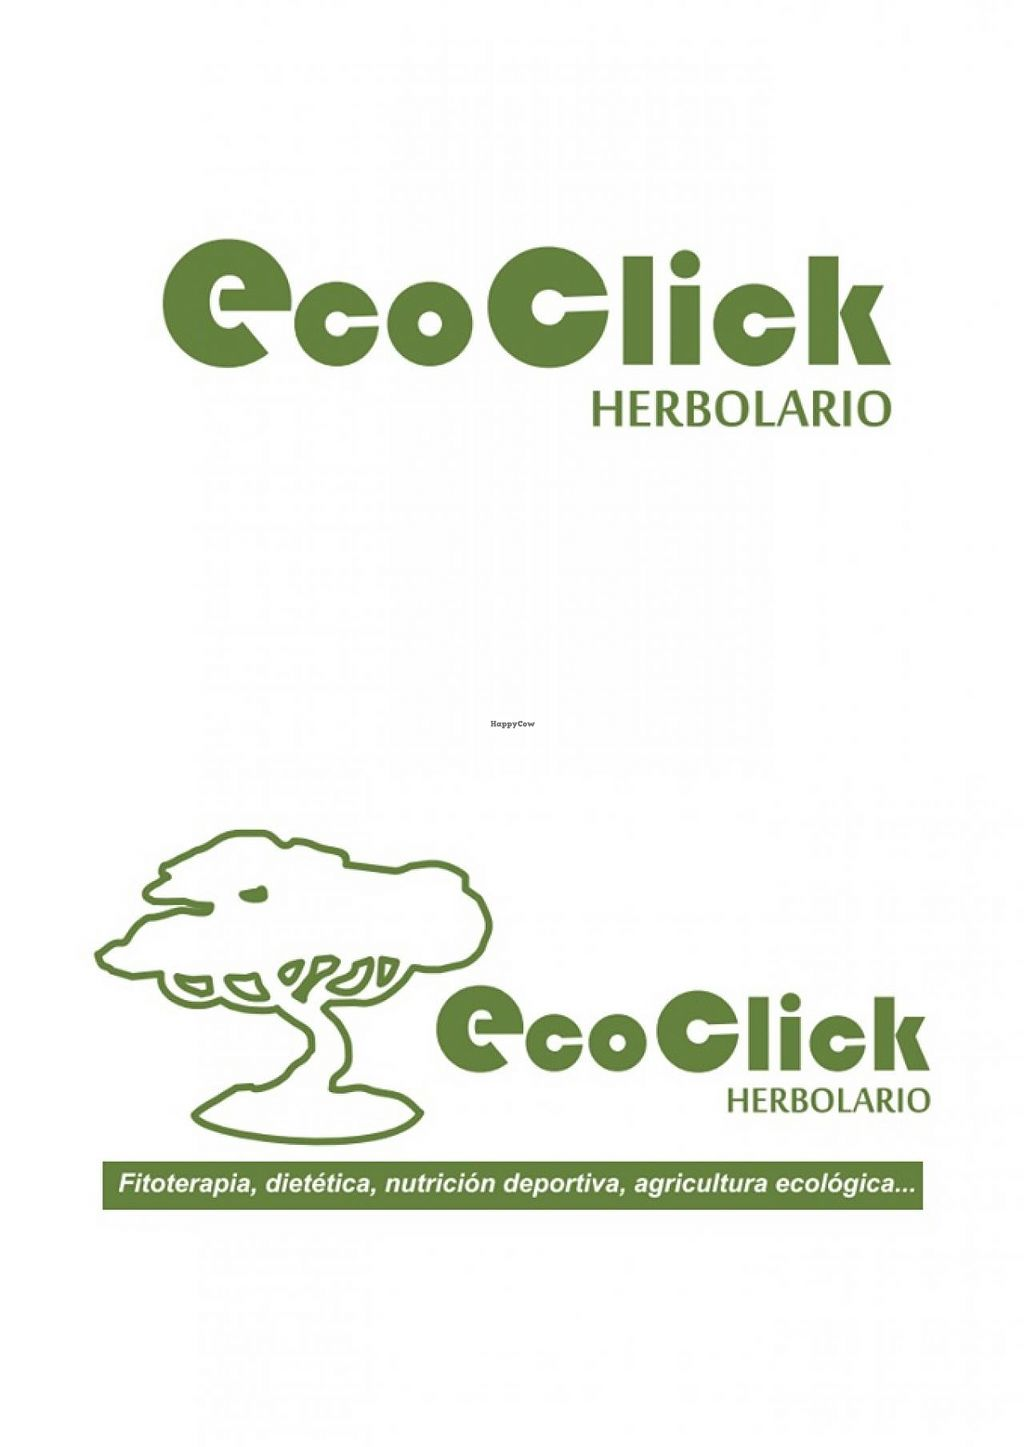 "Photo of Herbolario Ecoclick  by <a href=""/members/profile/community"">community</a> <br/>Herbolario Ecoclick